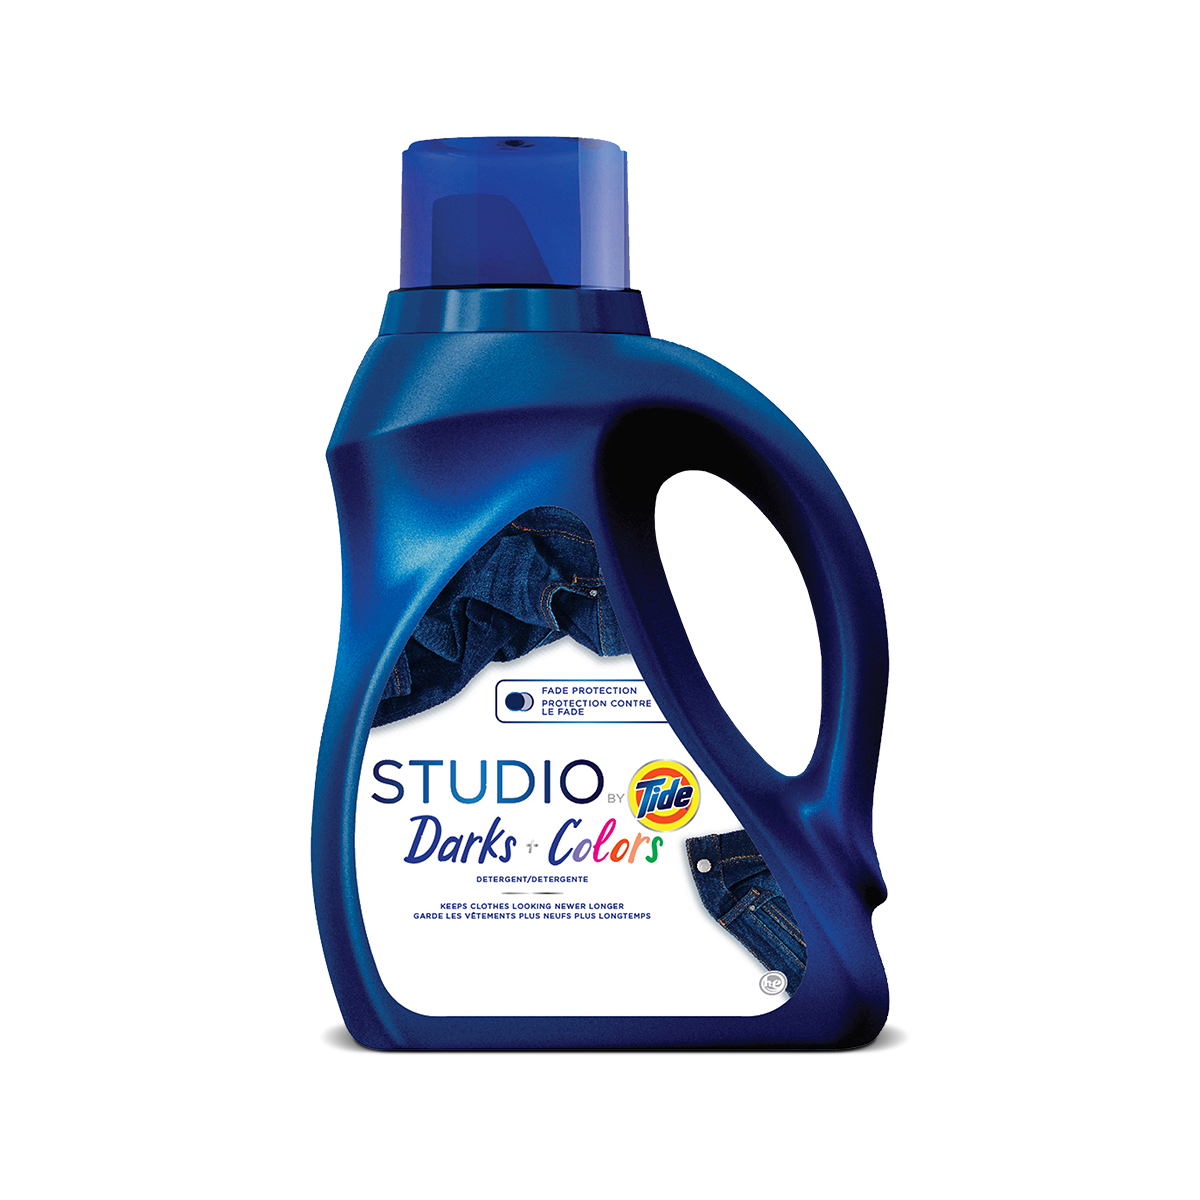 Studio by Tide Darks & Colors Liquid Laundry Detergent